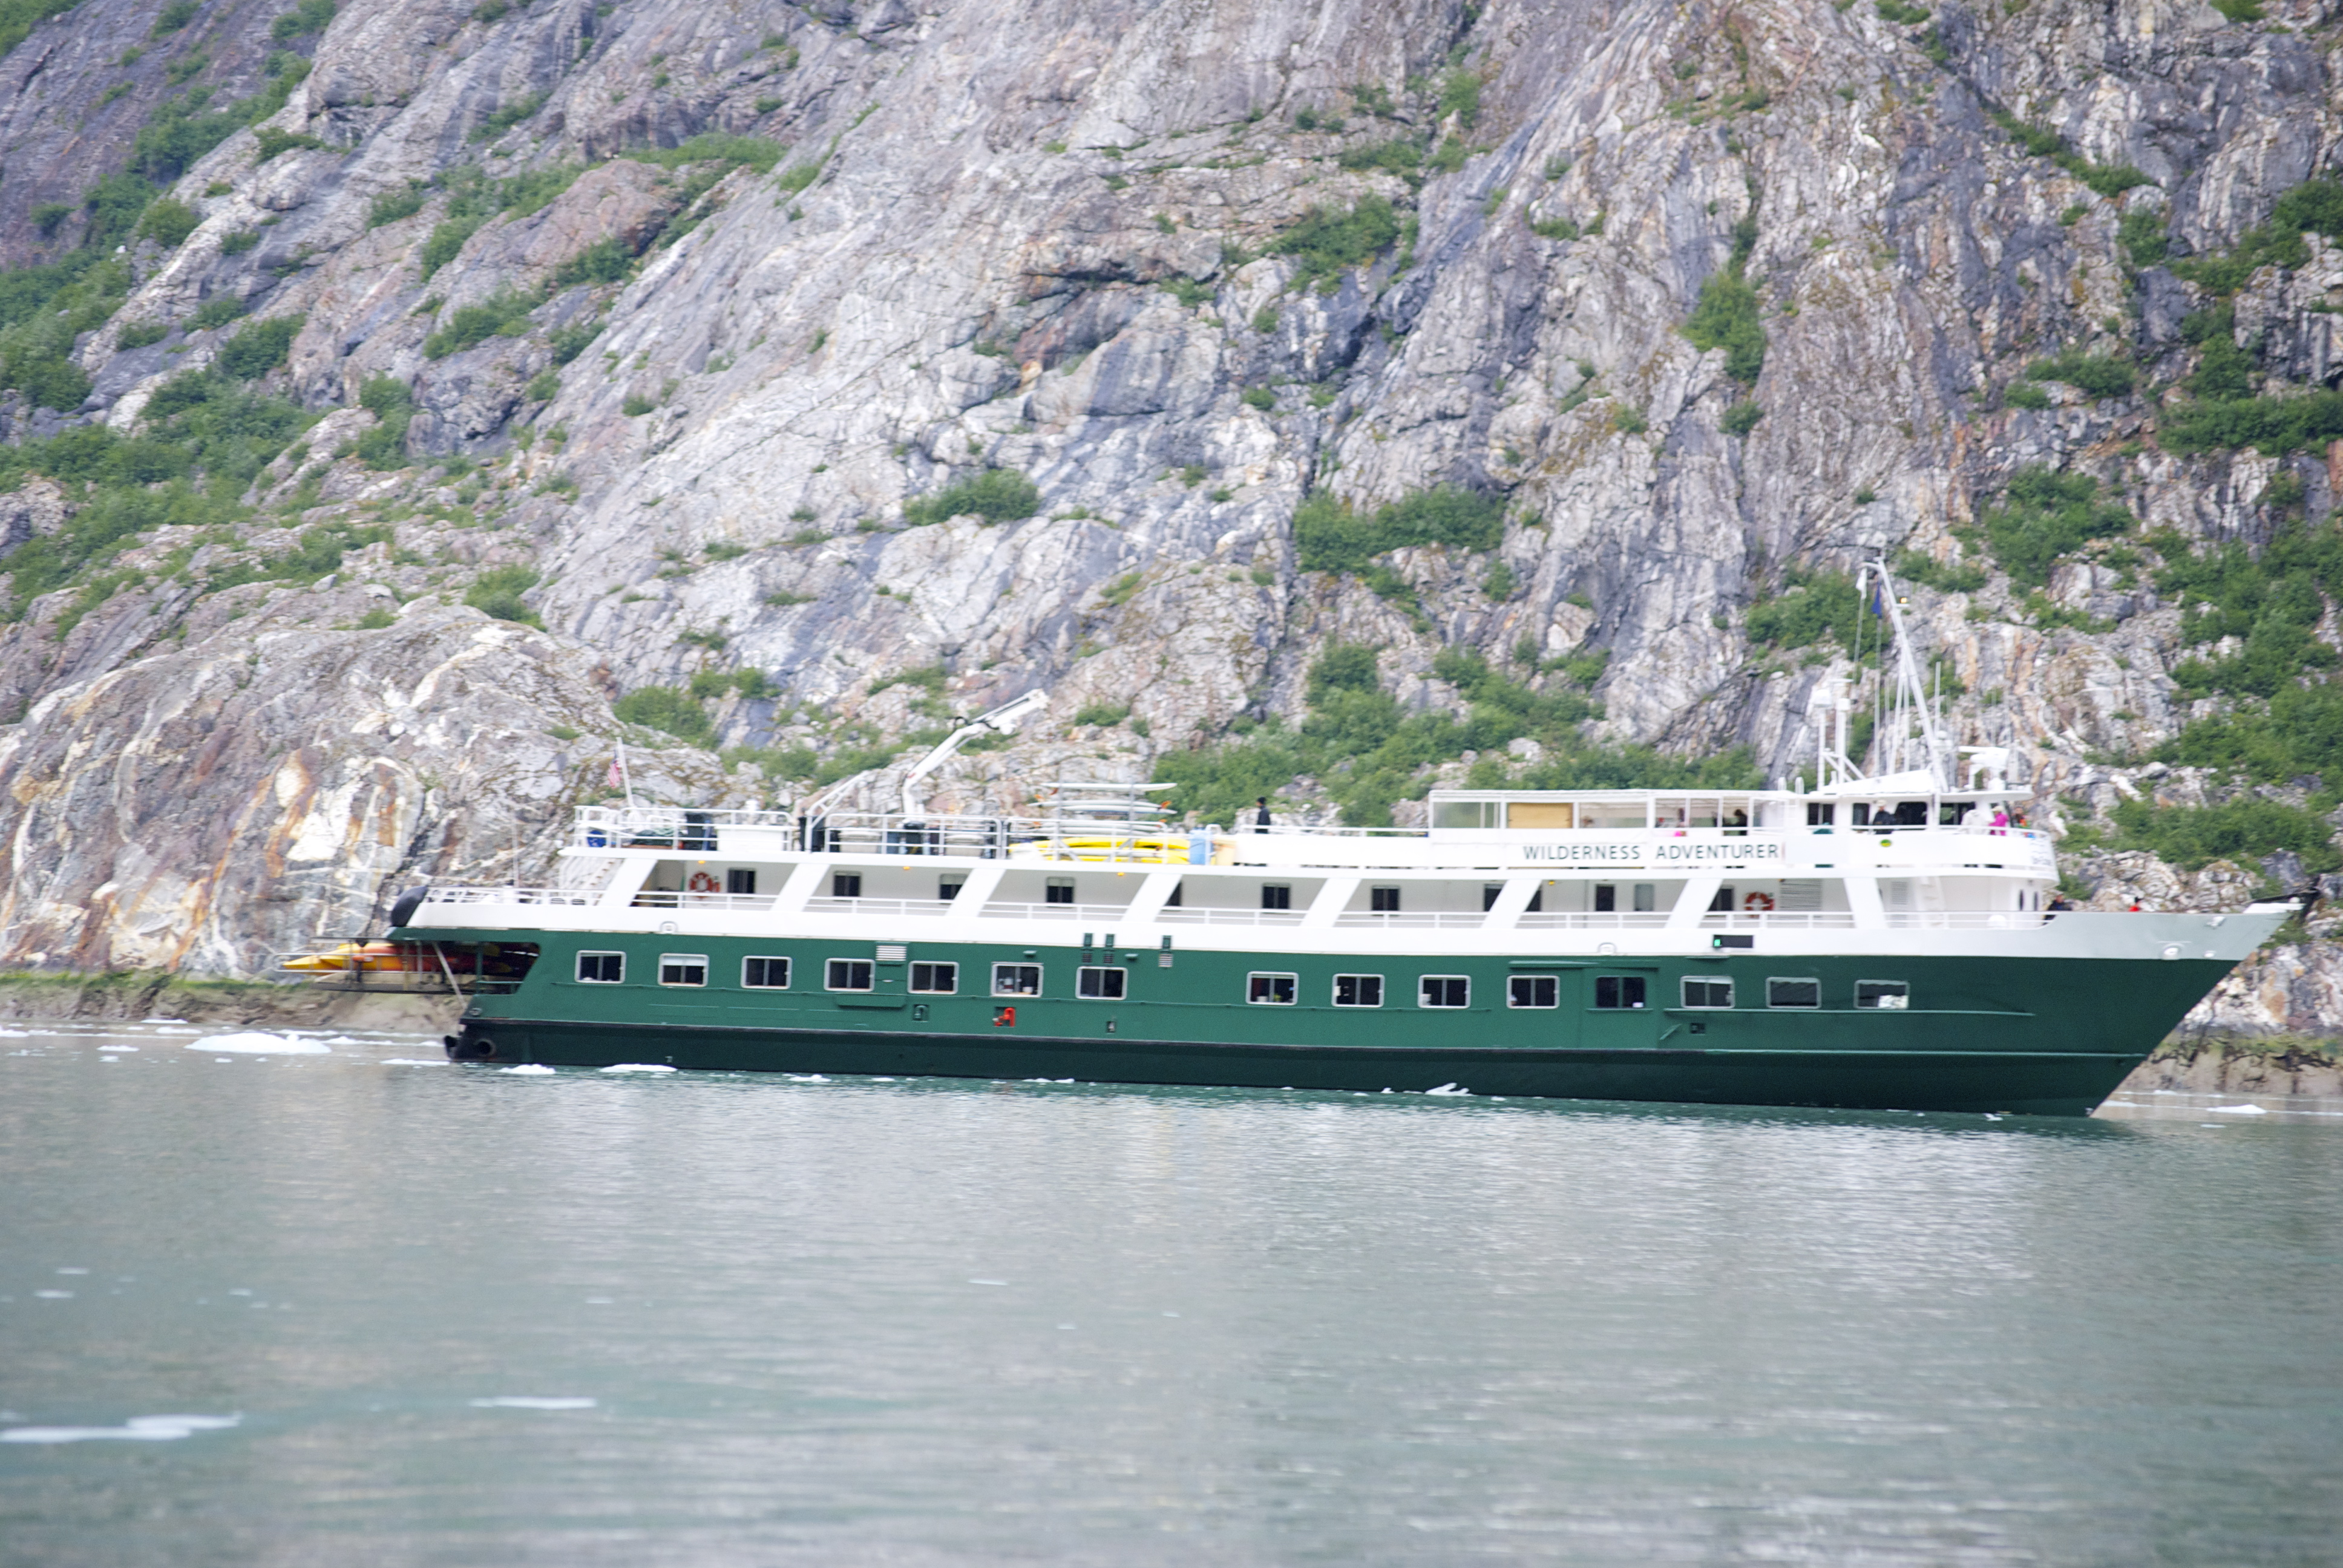 Alaska Small Ship Cruising What You Need To Know - AK On The GO